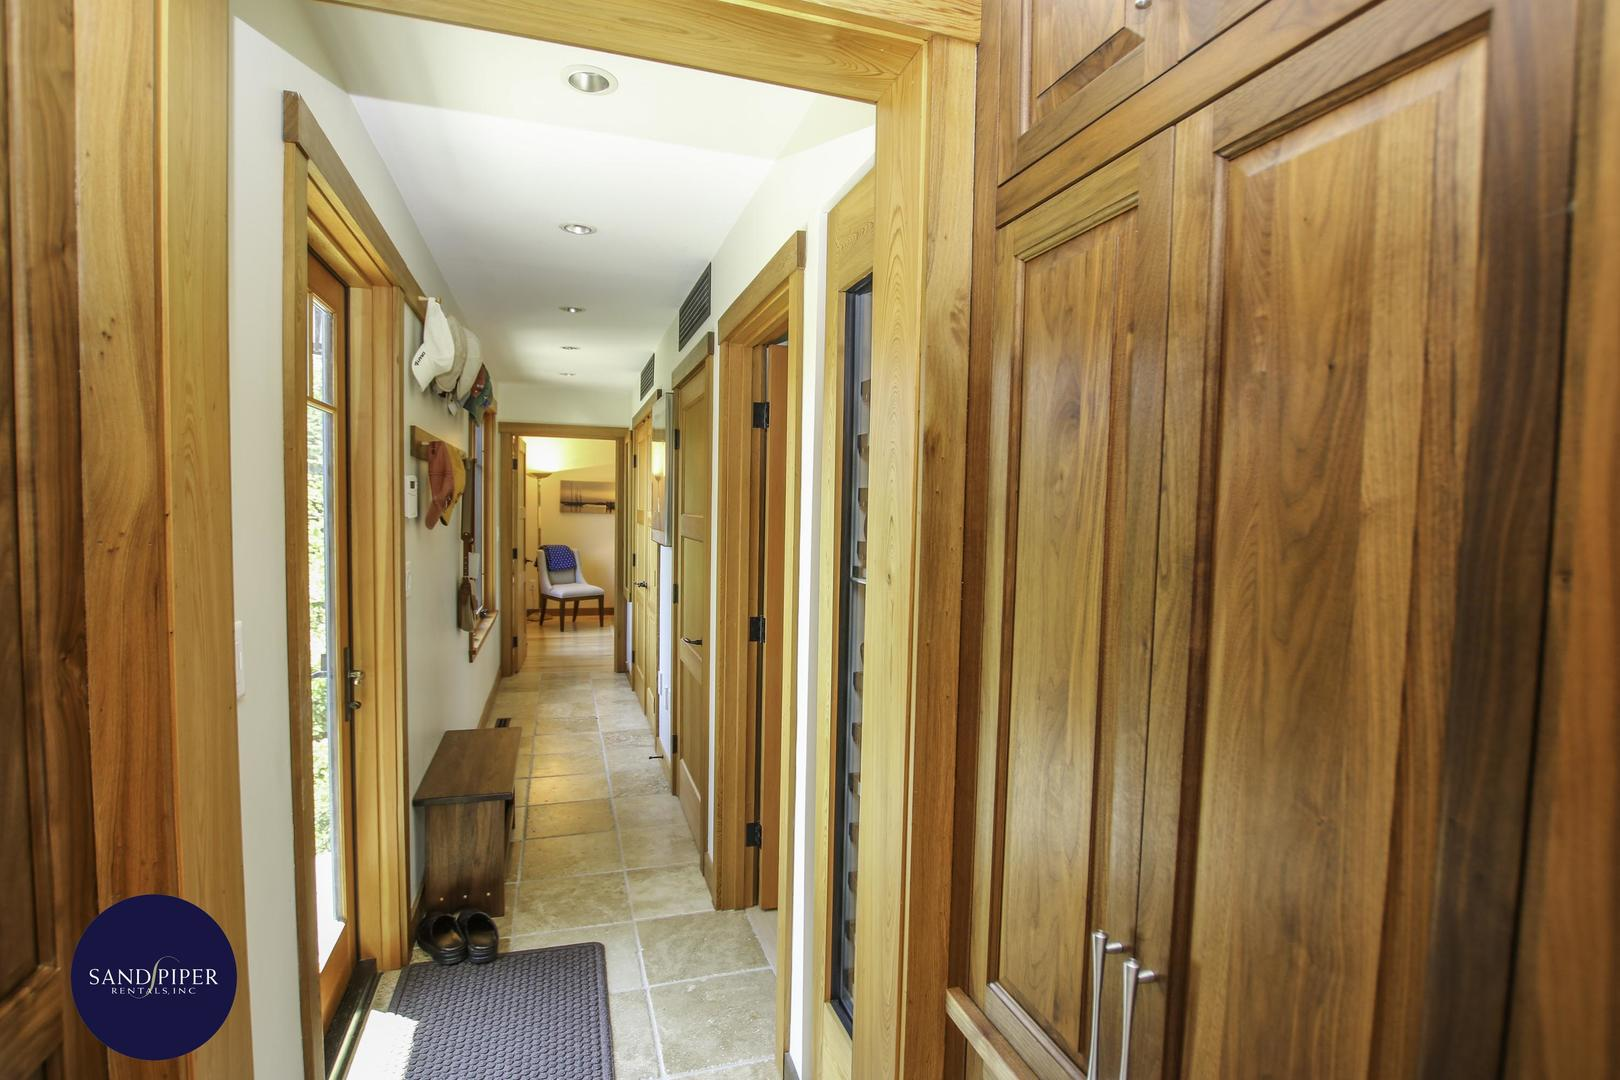 Hallway to BR2 and BR3